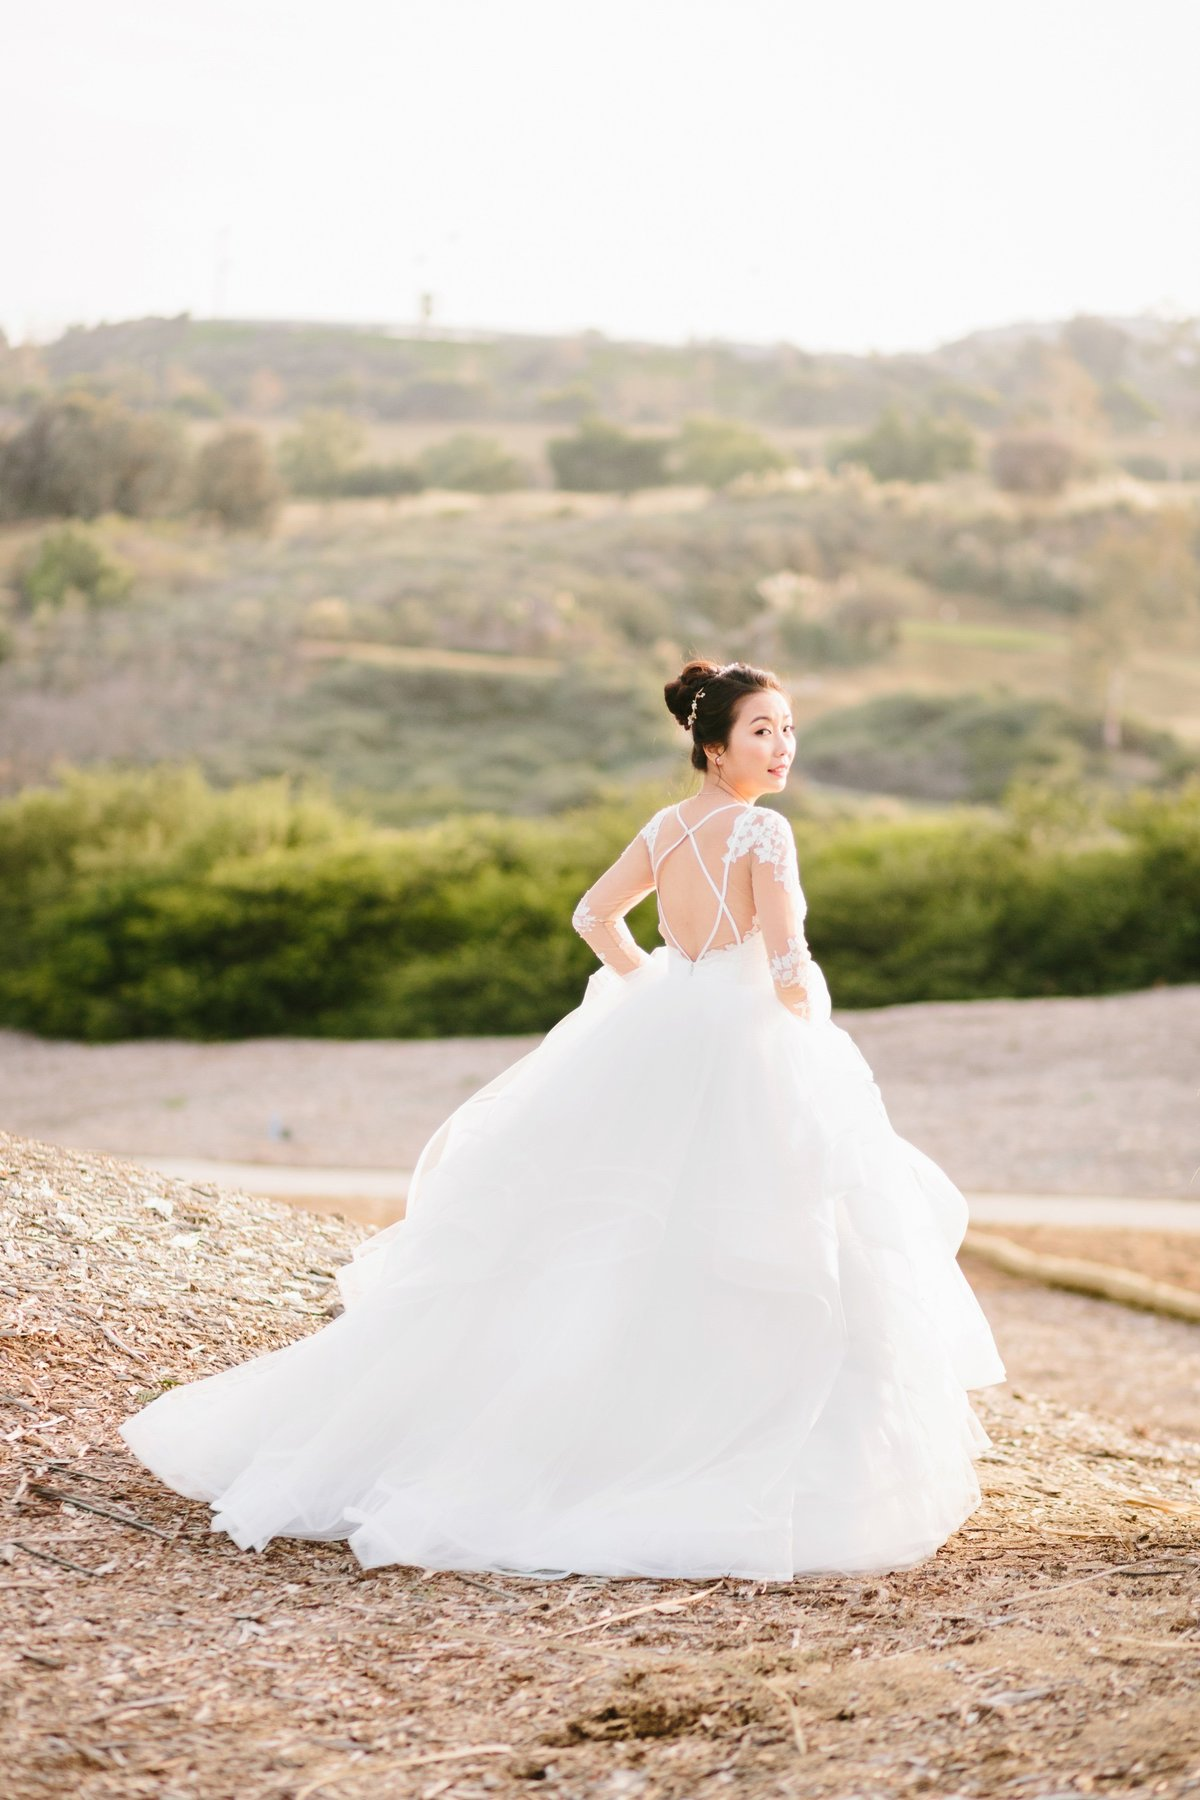 Best California Wedding Photographer-Jodee Debes Photography-253